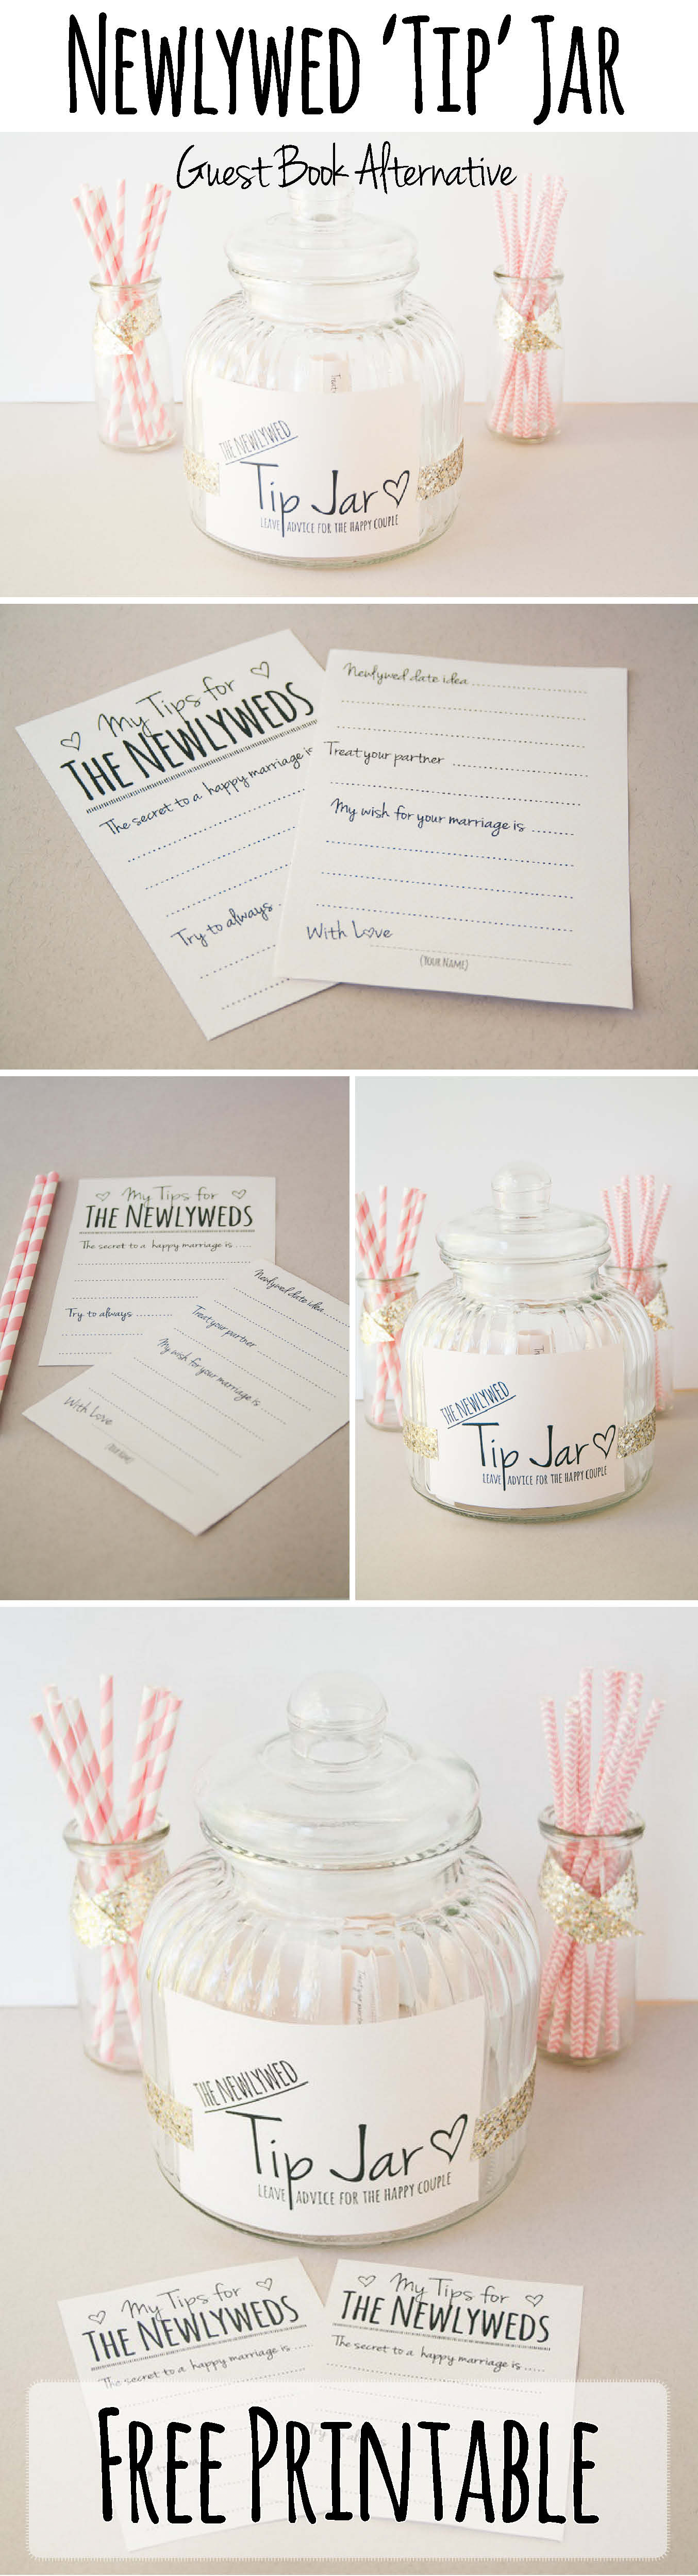 Newlywed Tip Jar Printable